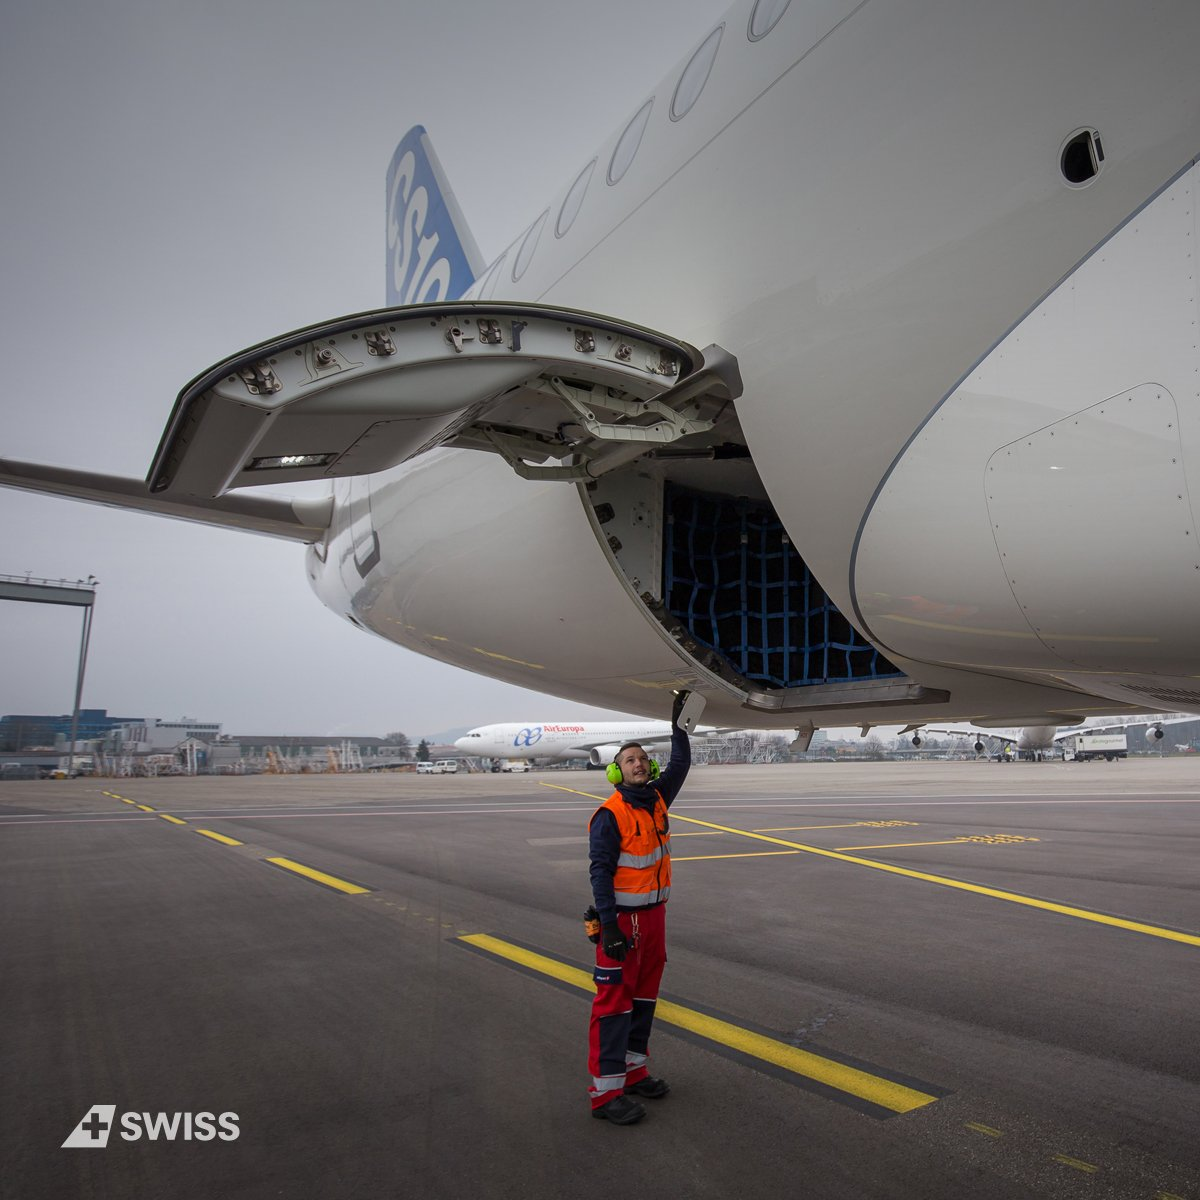 CSeries route proving trials are coming to an end. Find out more about it on our blog: